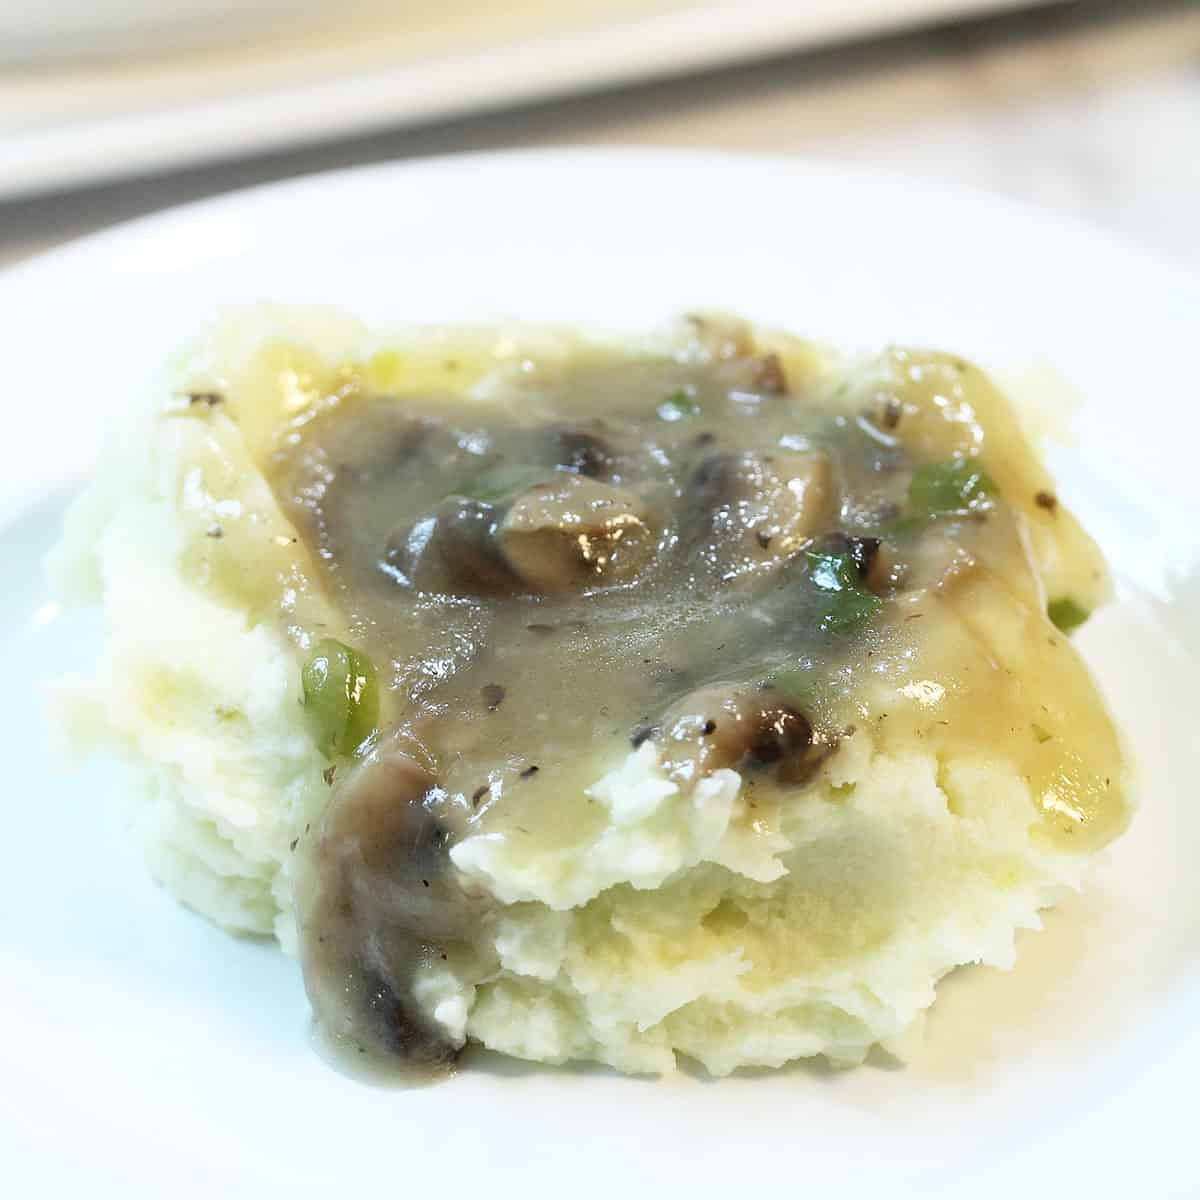 Gravy topped potatoes on white plate.